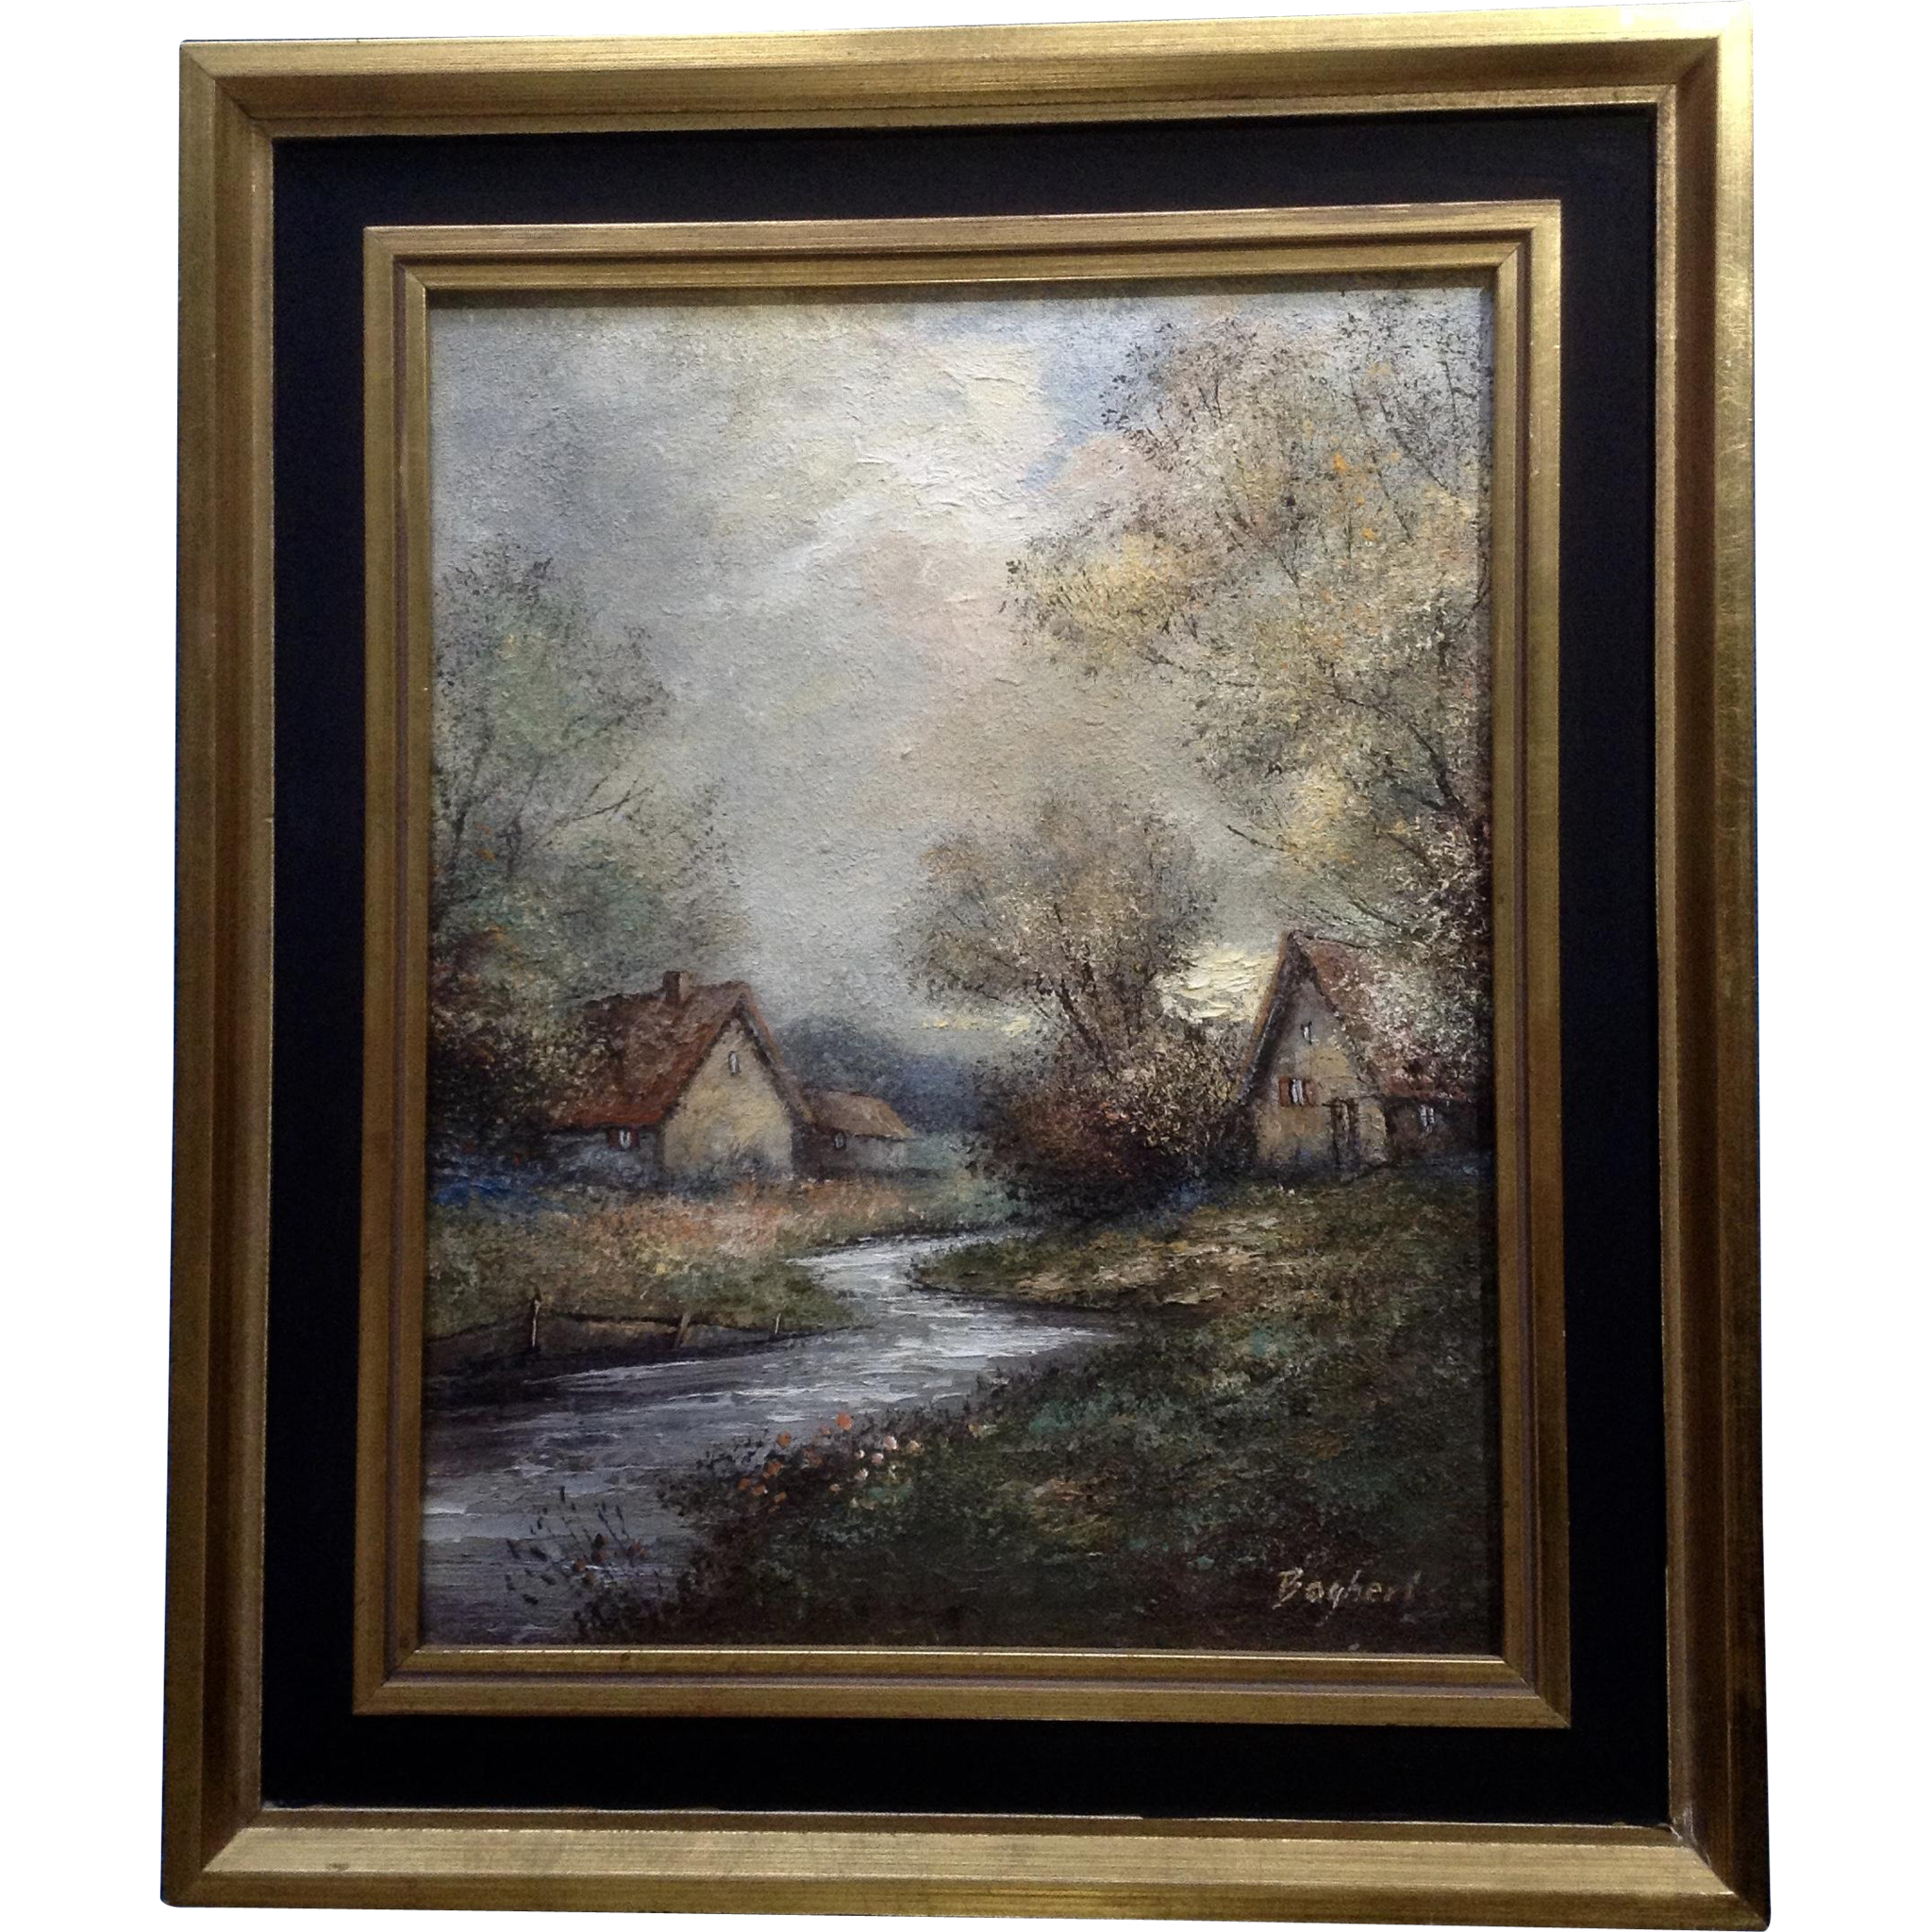 Baghert Landscape Oil Painting On Board Of A Stream